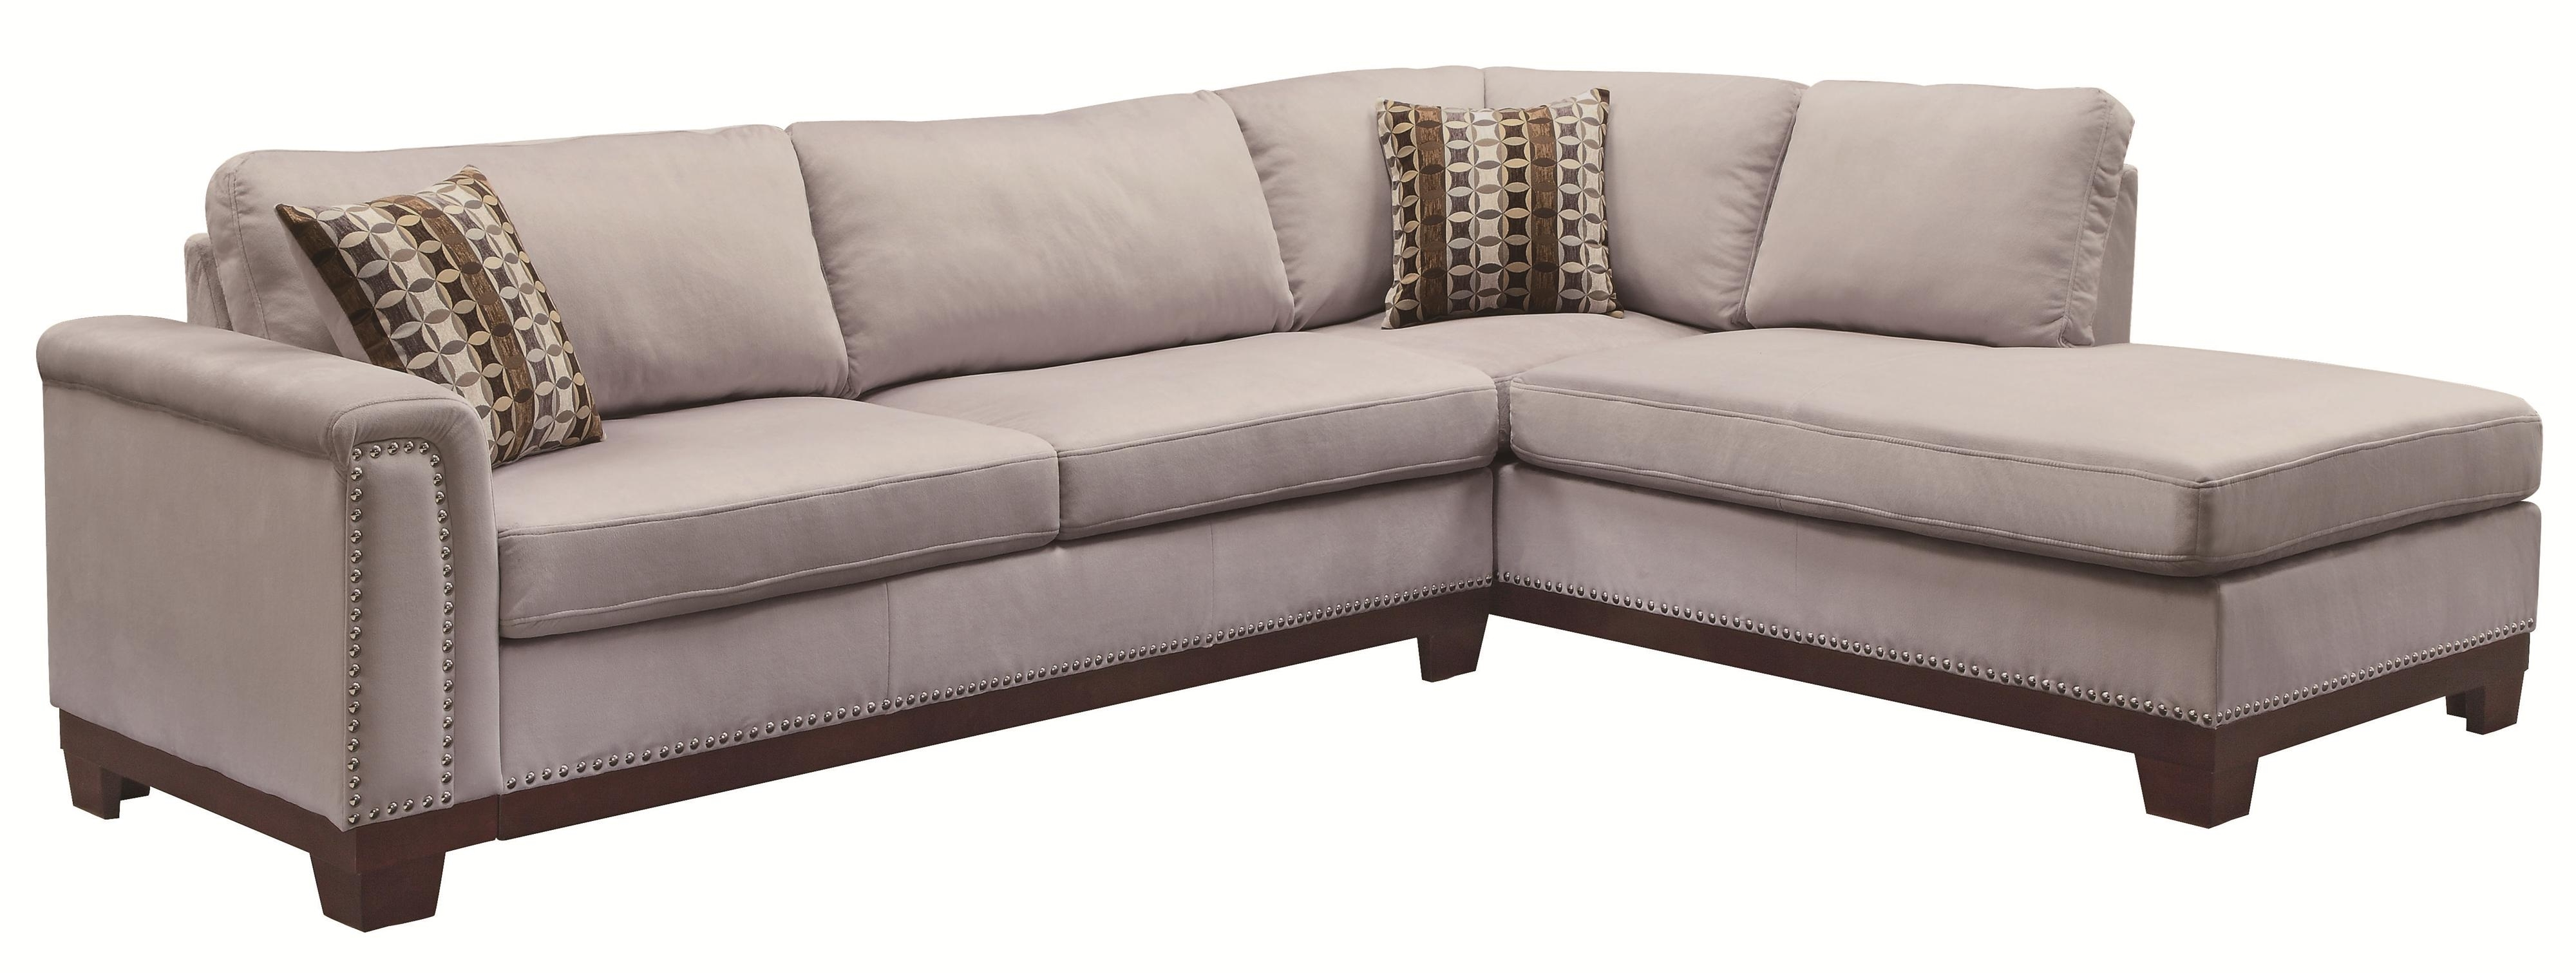 Value Pertaining To Trendy Reversible Chaise Sectional Sofas (View 13 of 15)